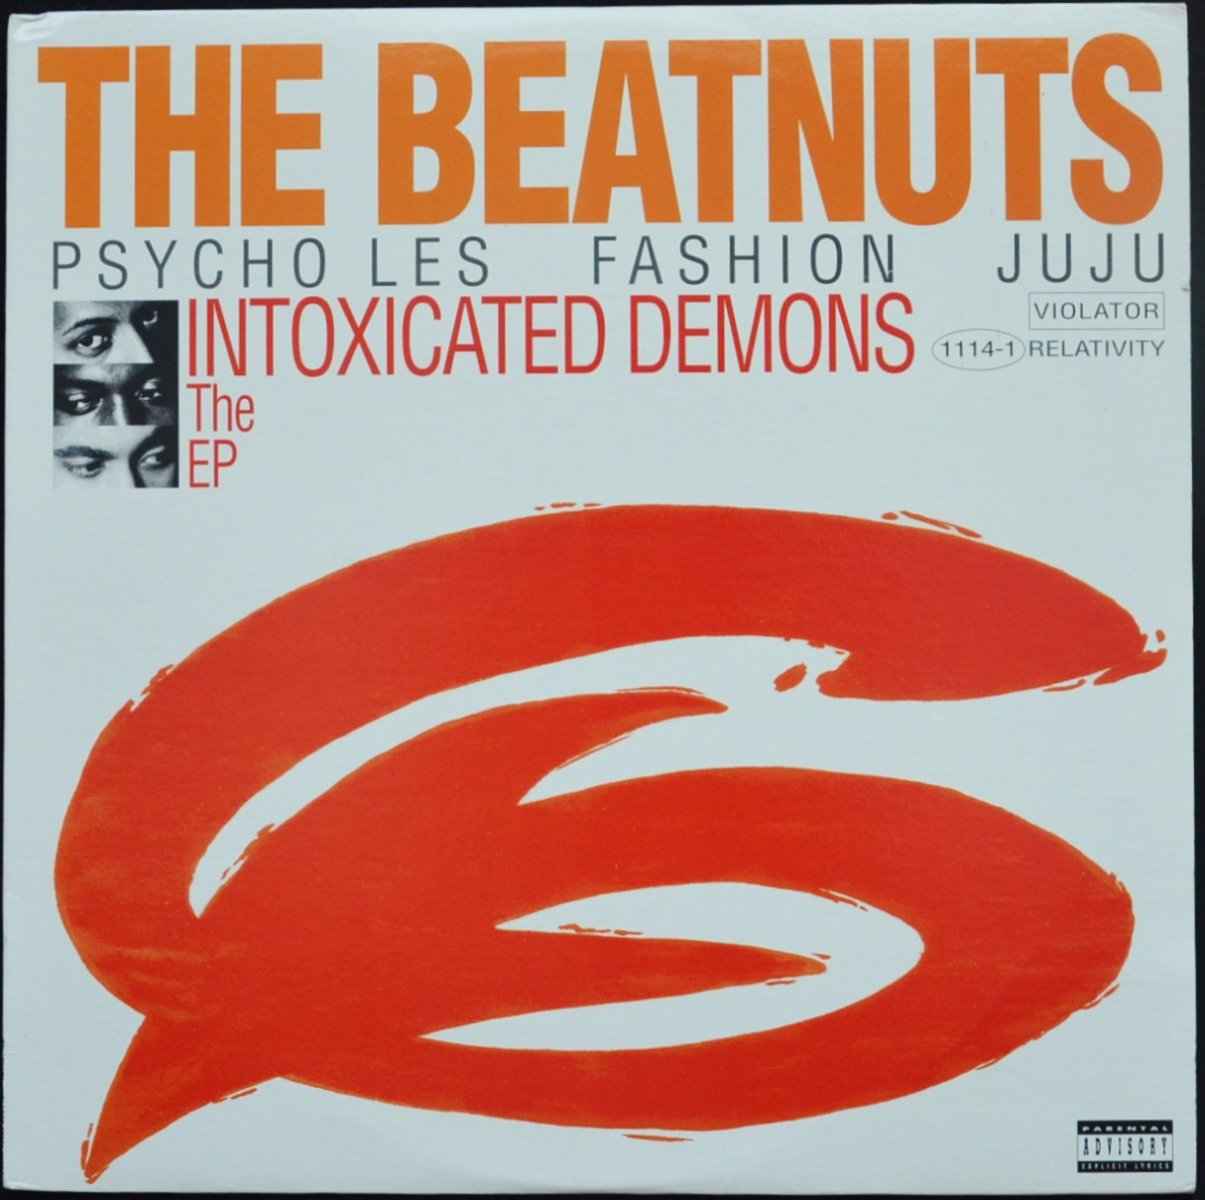 THE BEATNUTS / INTOXICATED DEMONS THE EP (12